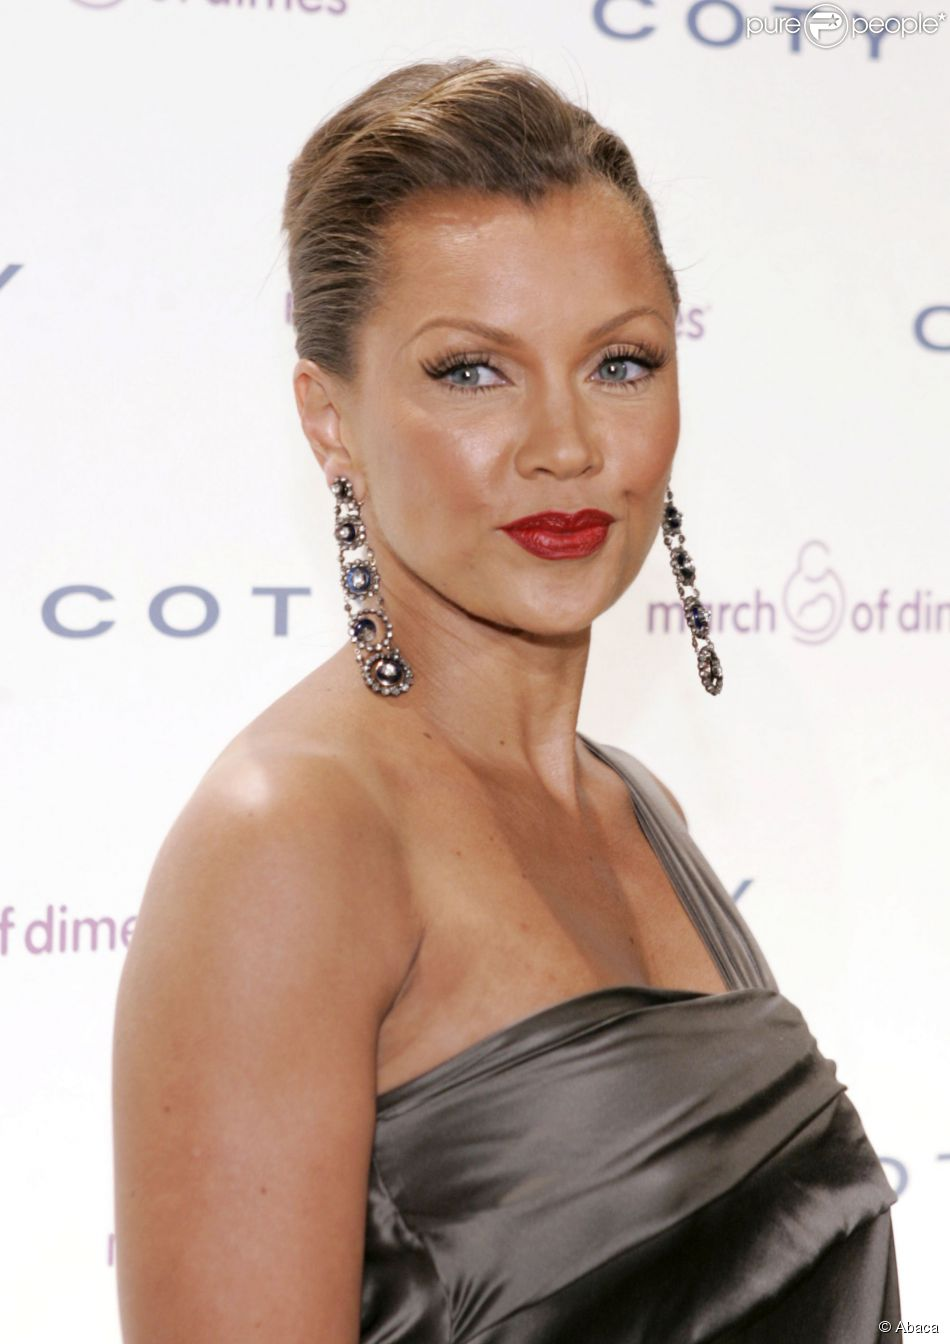 Actress Vanessa Williams poses at the March of Dimes 33rd Annual Beauty Ball, held at Cipriani 42nd Street in New York City, NY, USA on March 12, 2008. Photo by Donna Ward/ABACAPRESS.COM13/03/2008 -